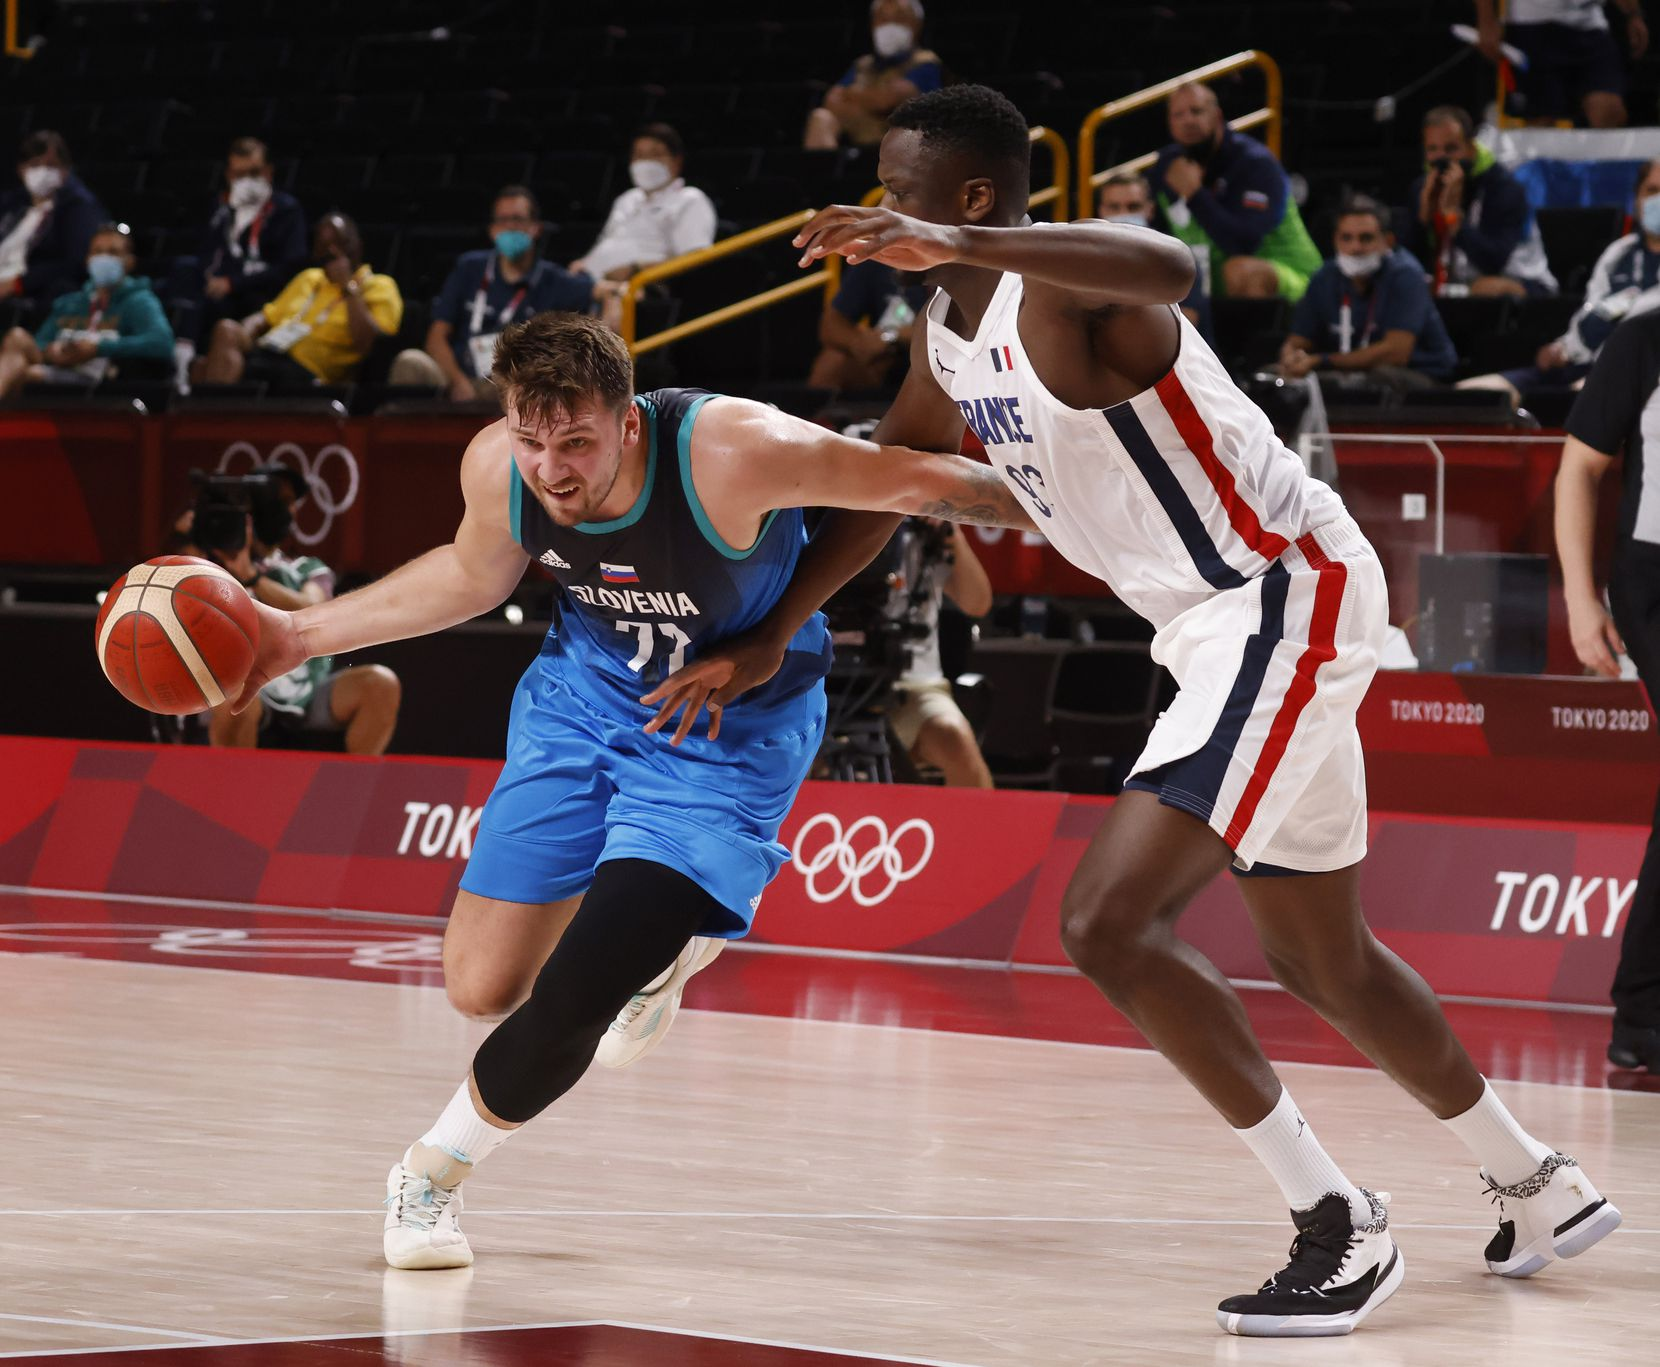 Slovenia's Luka Doncic (77) drives to the basket as he is defended by France's Moustapha Fall (93) during the first half of a men's basketball semifinal at the postponed 2020 Tokyo Olympics at Saitama Super Arena, on Thursday, August 5, 2021, in Saitama, Japan. (Vernon Bryant/The Dallas Morning News)